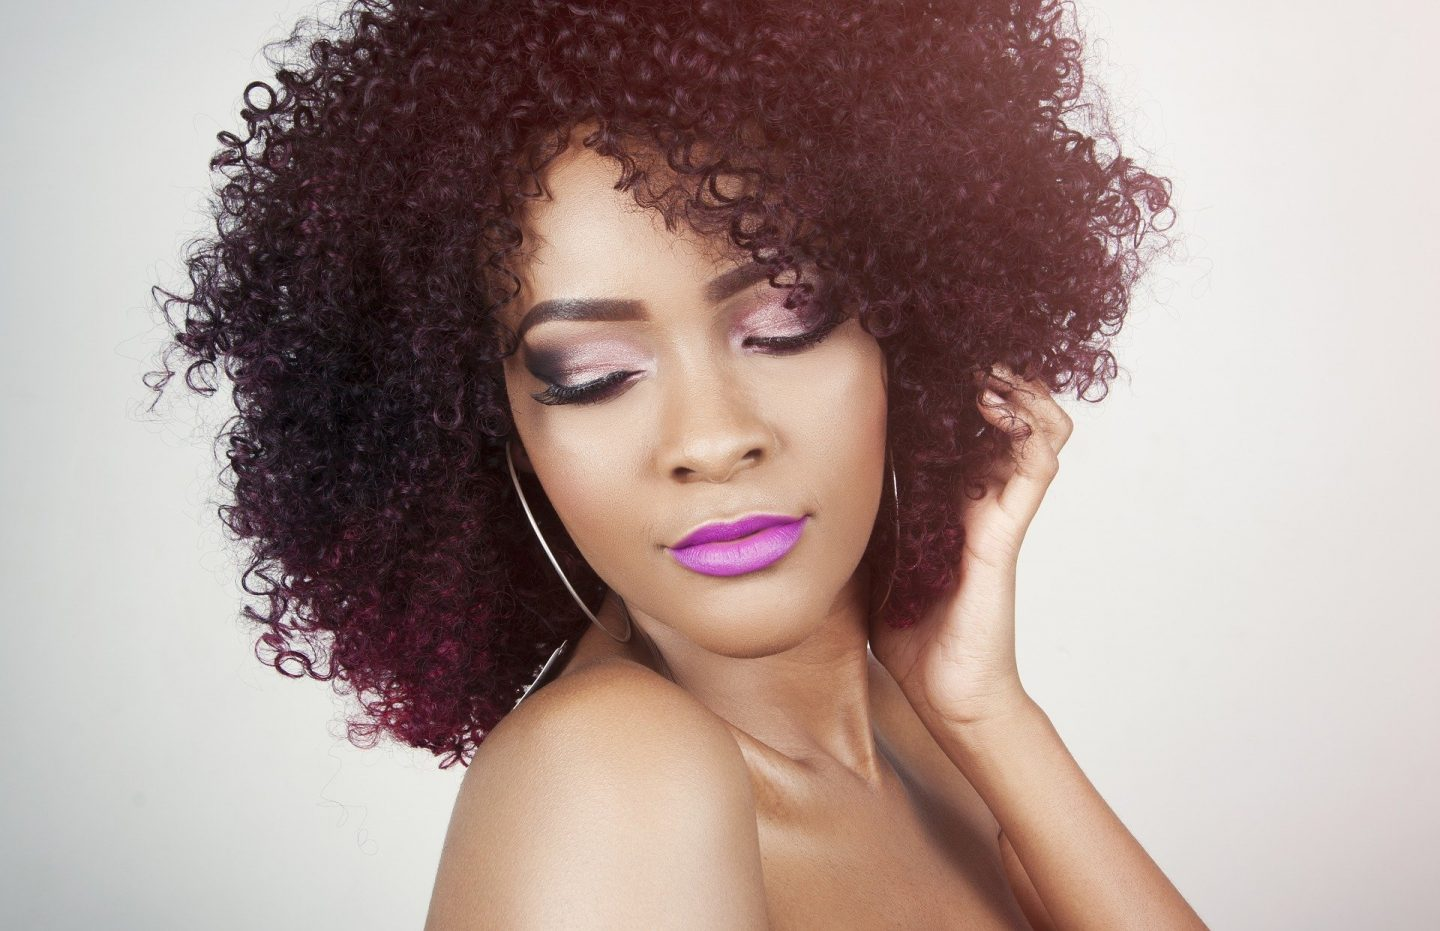 TOP 5 HAIR STYLING TIPS FOR CURLY HAIR